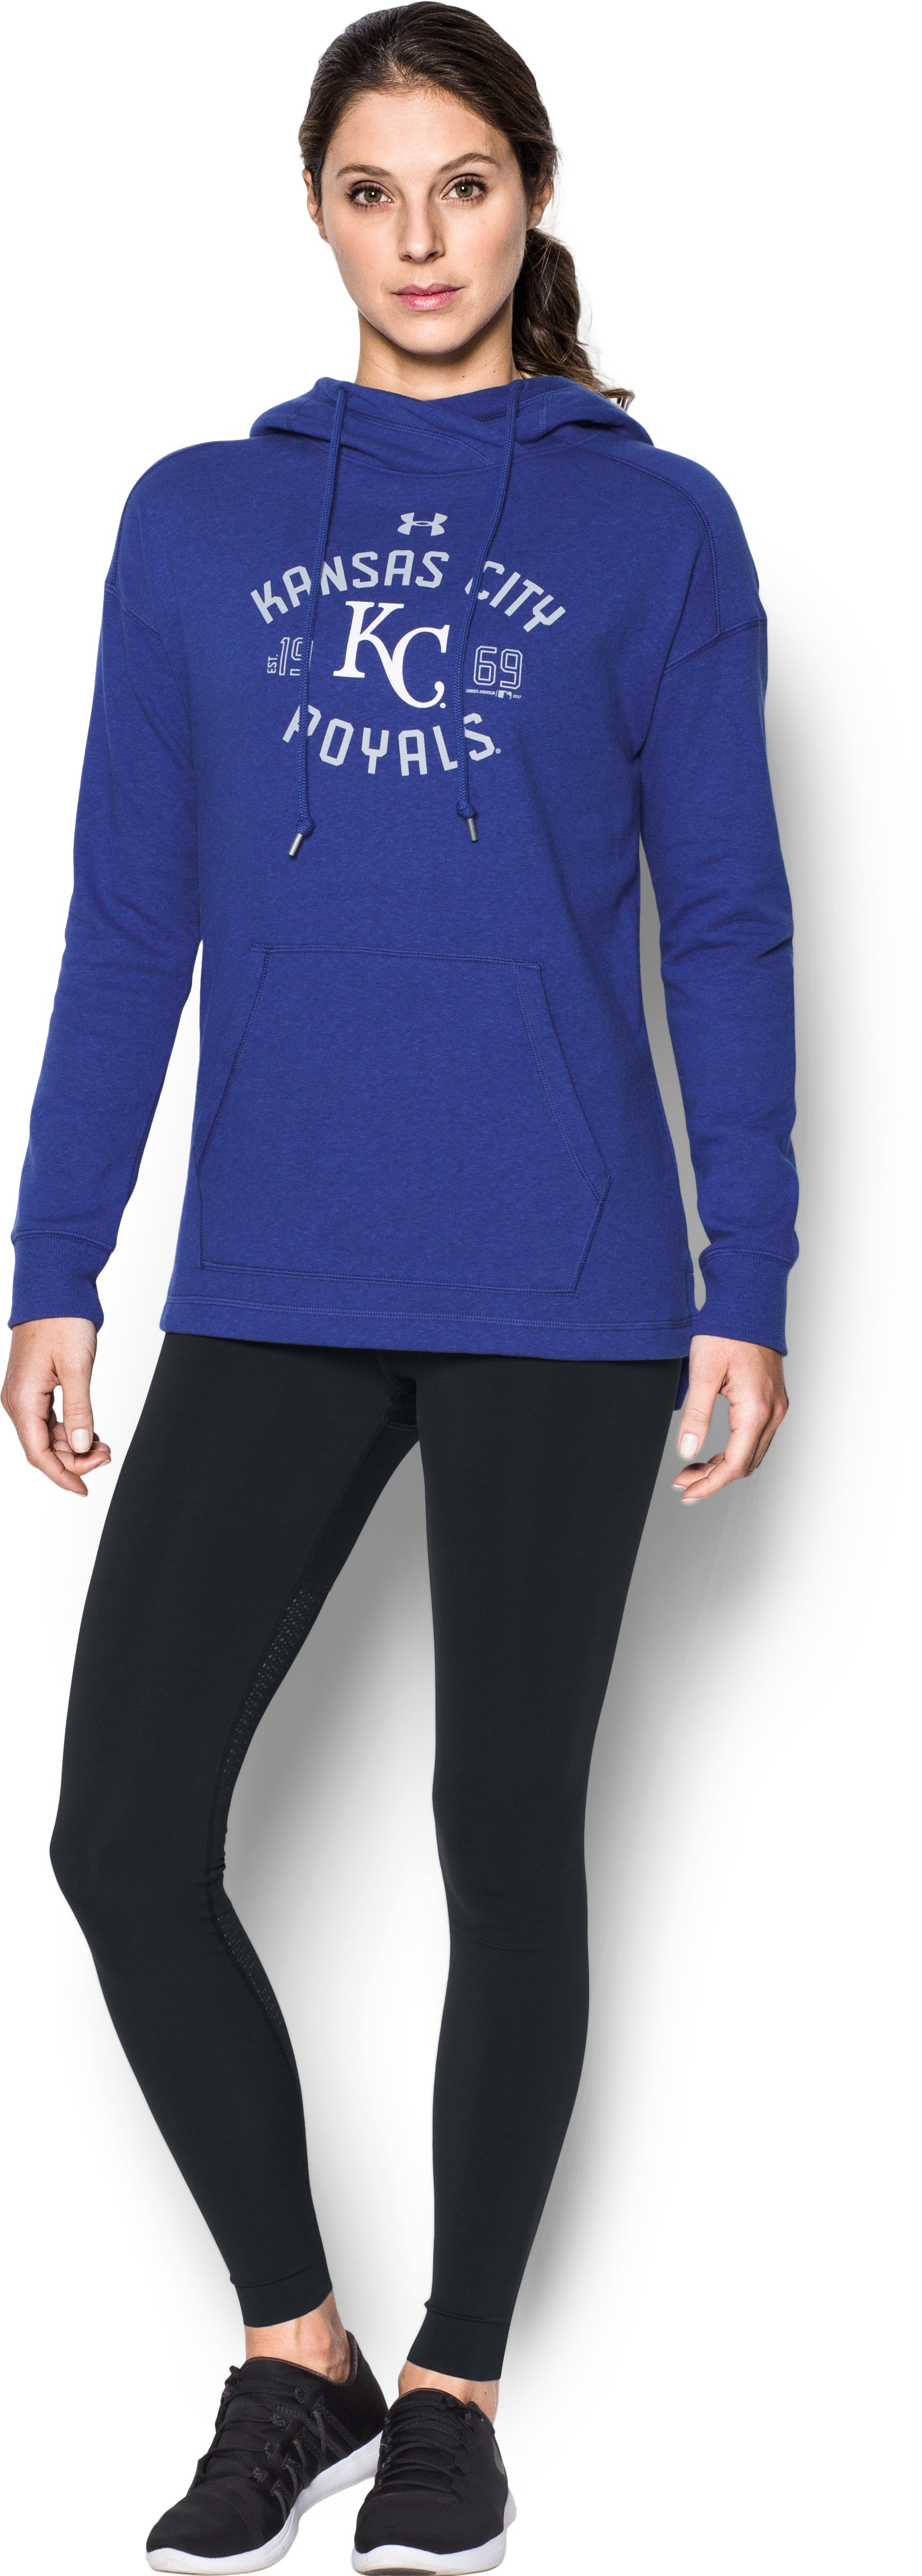 Women's  Kansas City Royals Armour Fleece® Hoodie, Royal